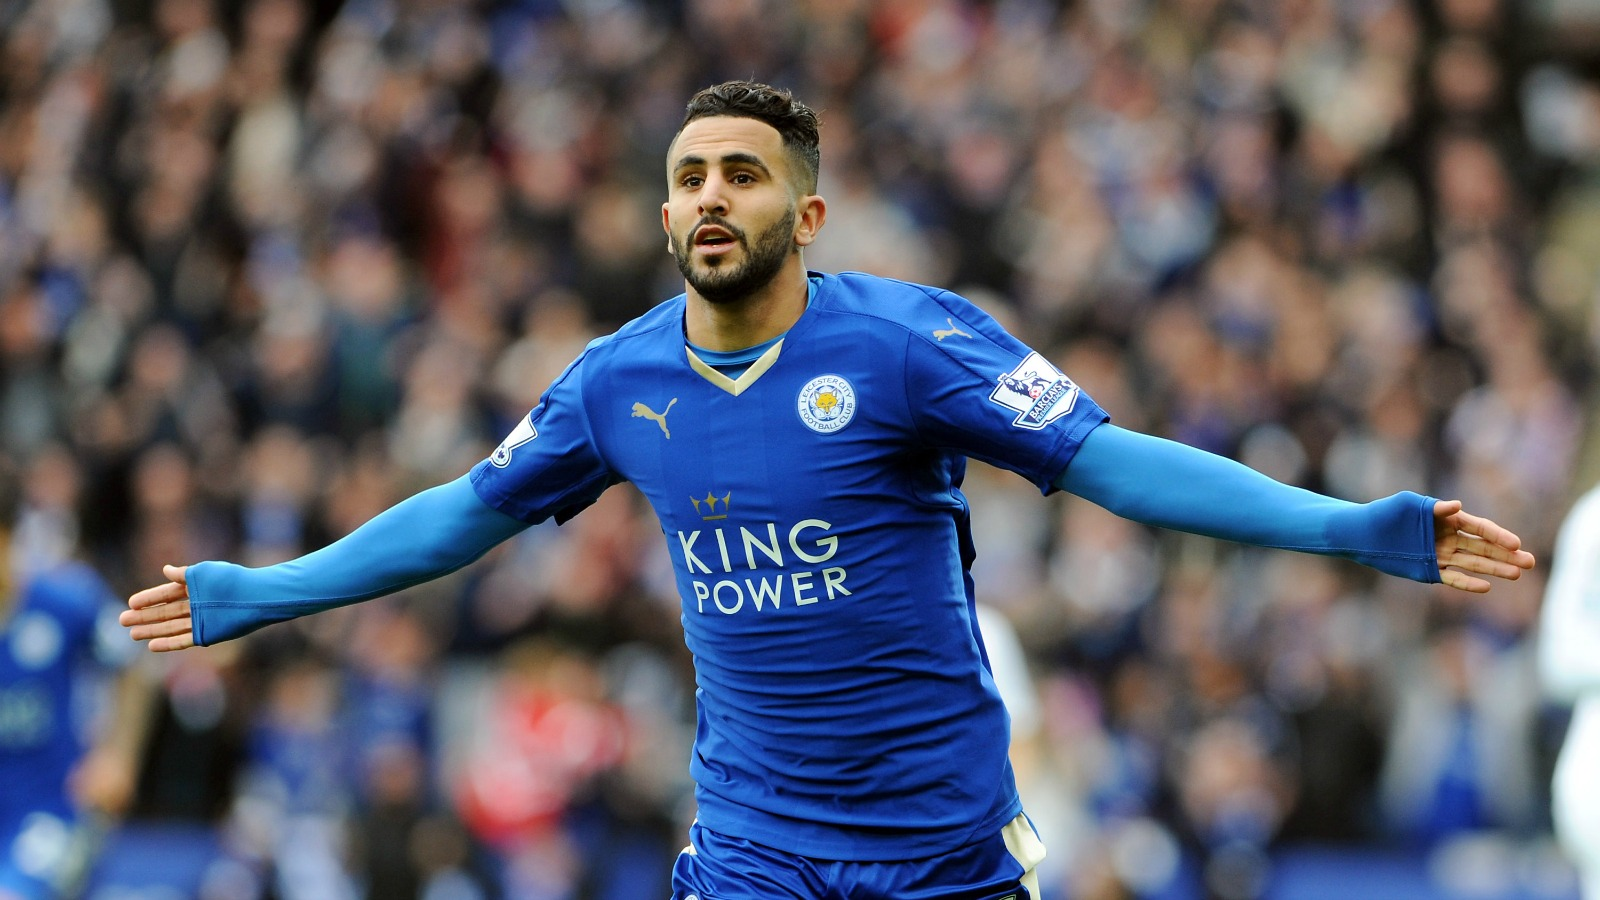 Leicester's Riyad Mahrez wins PFA Player of the Year, Dell Ali wins Young Player award